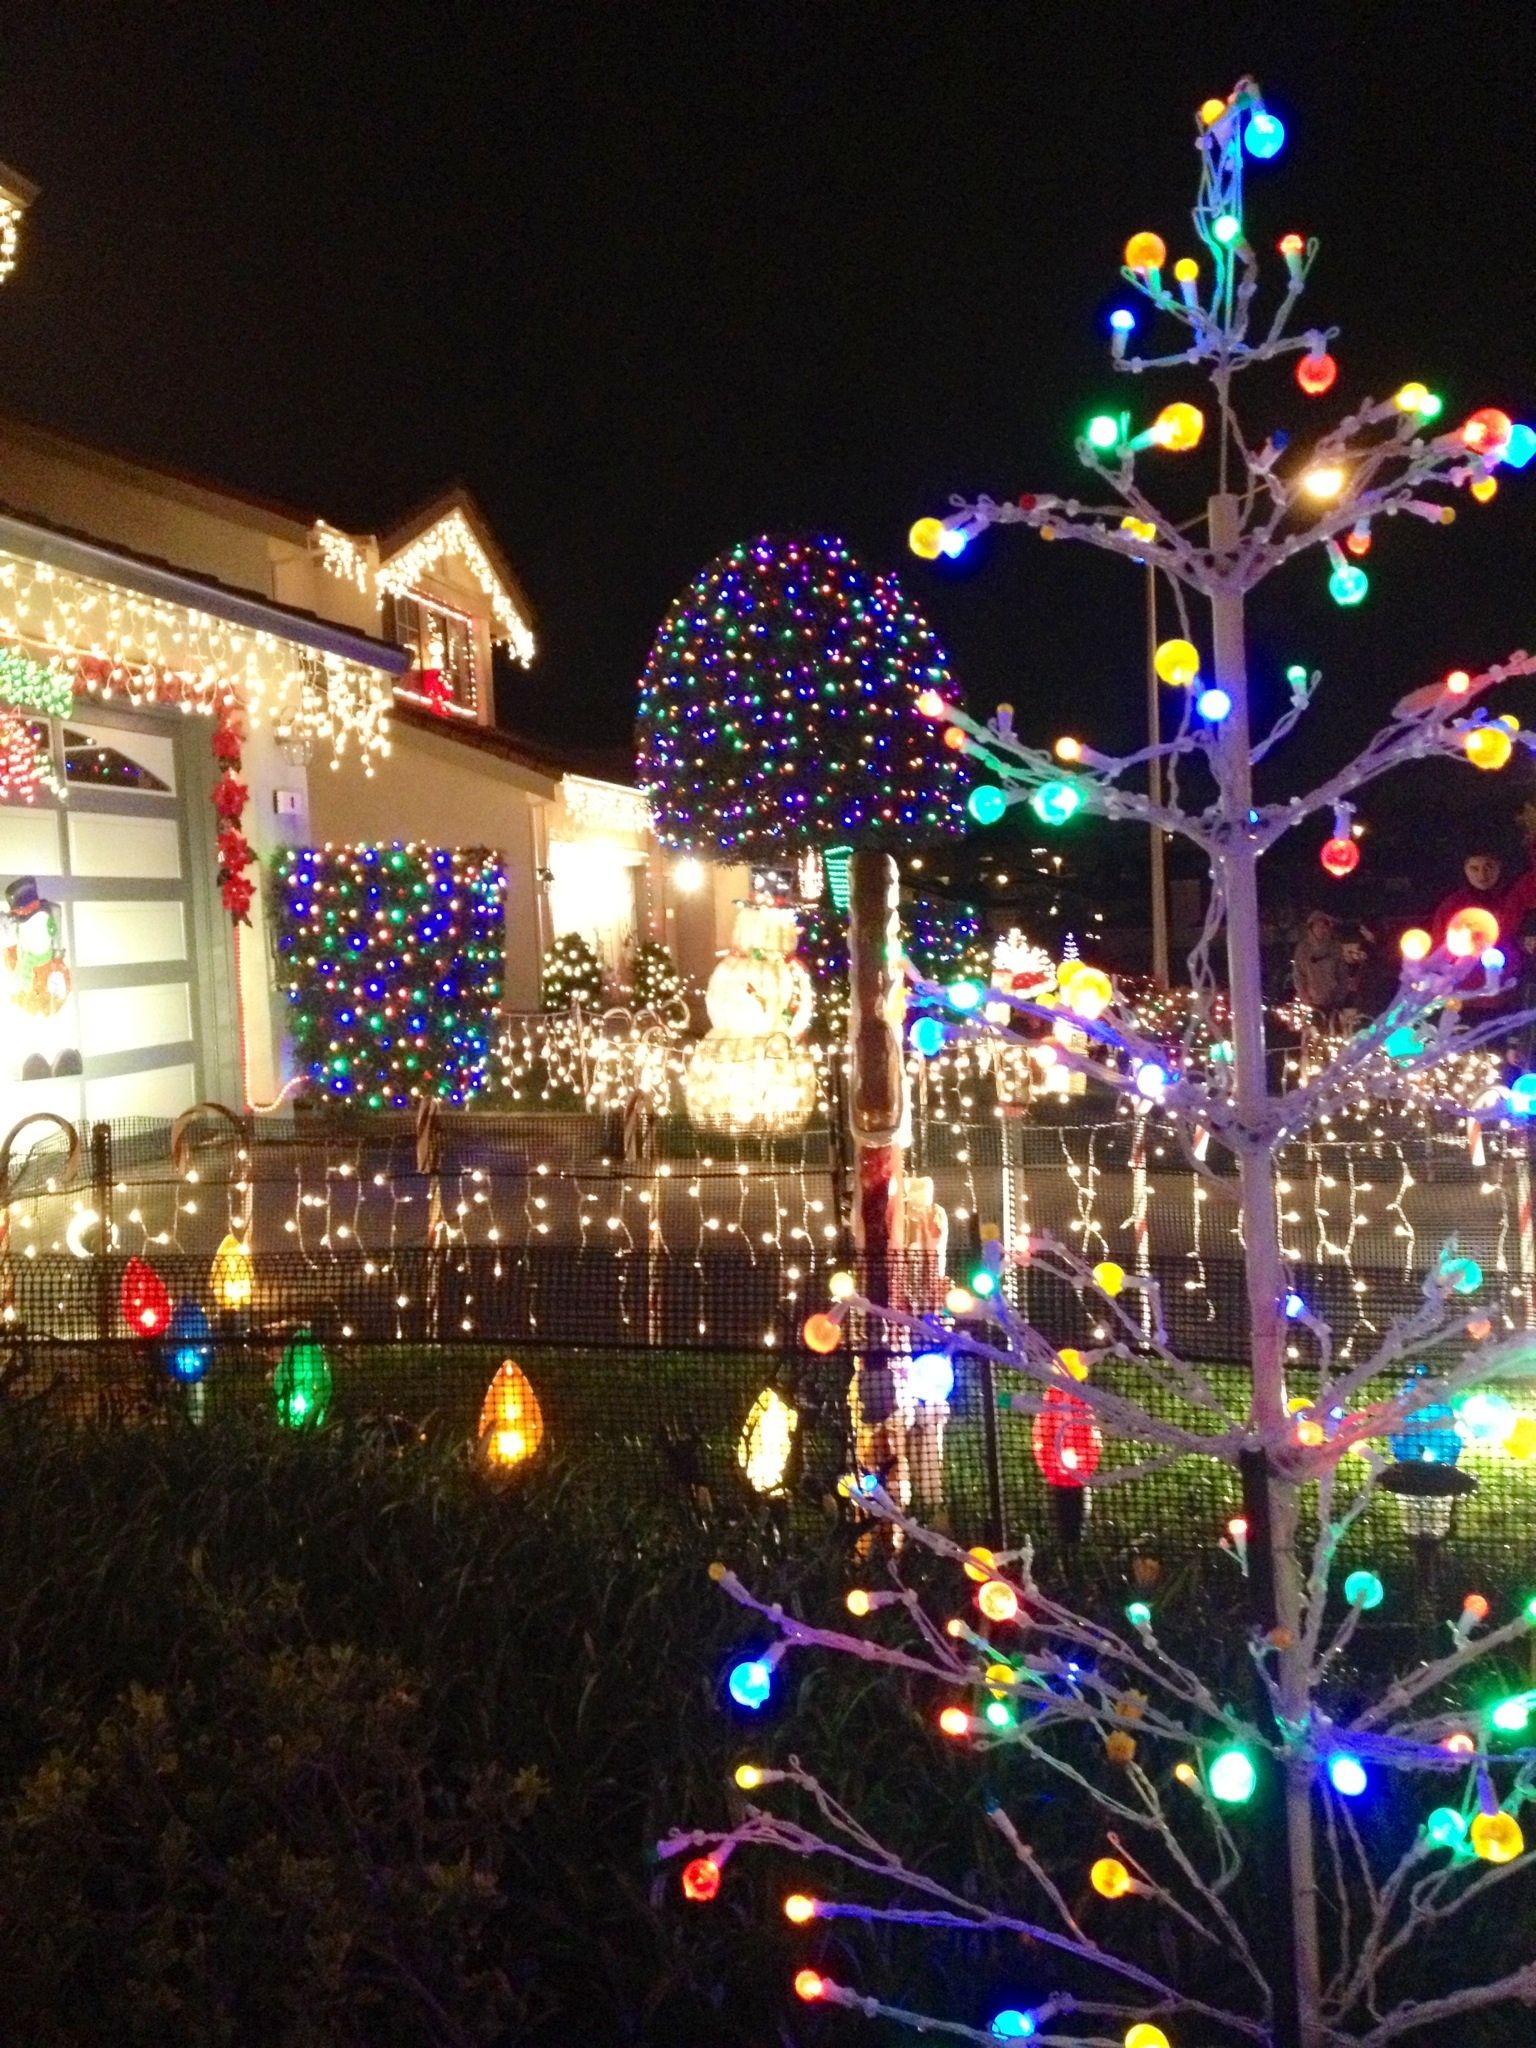 Christmas lights displays at Chestnut Ave in